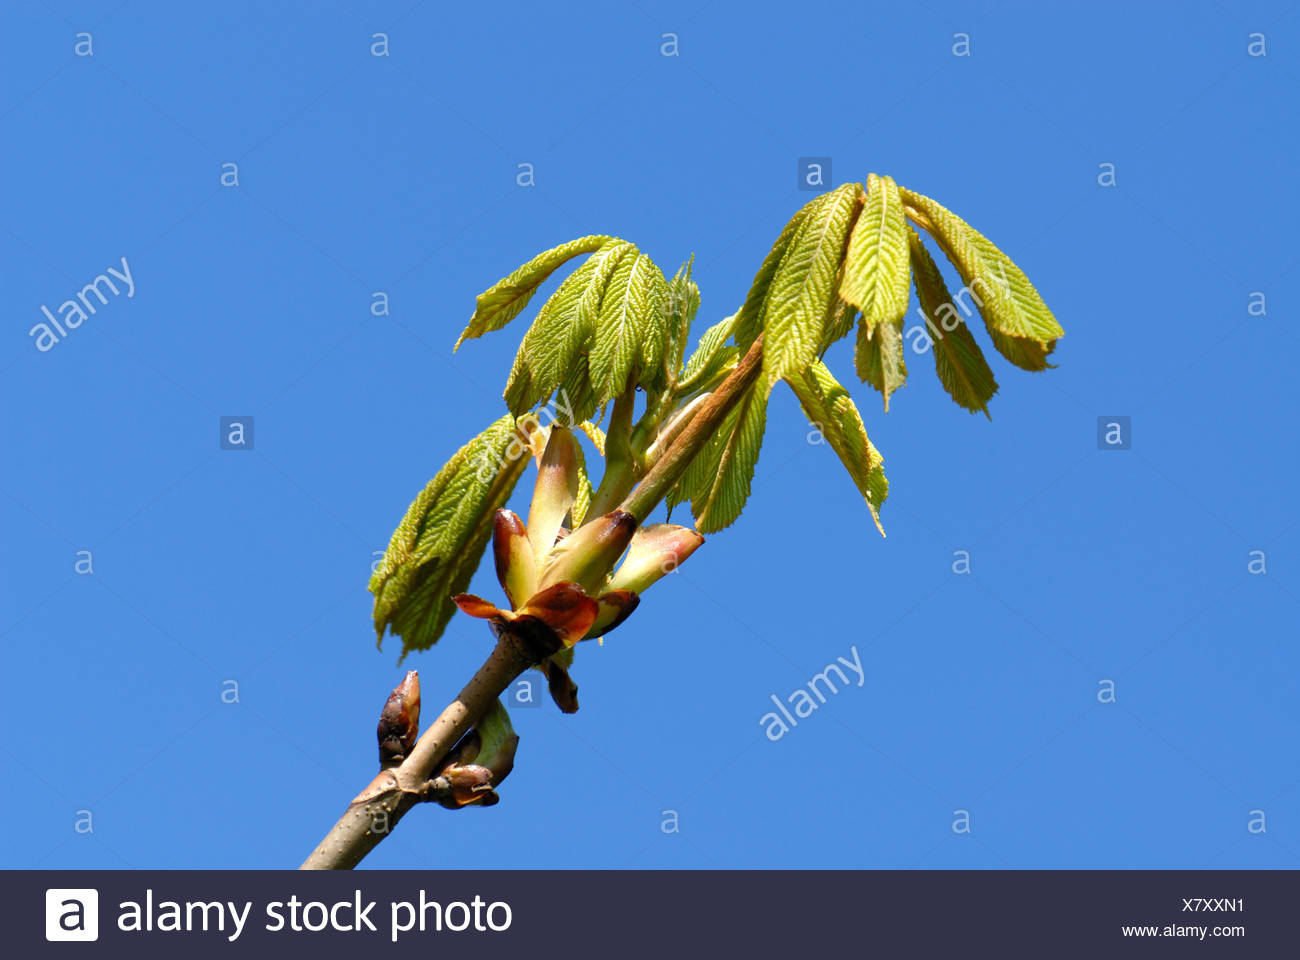 Horse chestnut Aesculus hippocastanum young leaves against a blue spring sky Stock Photo